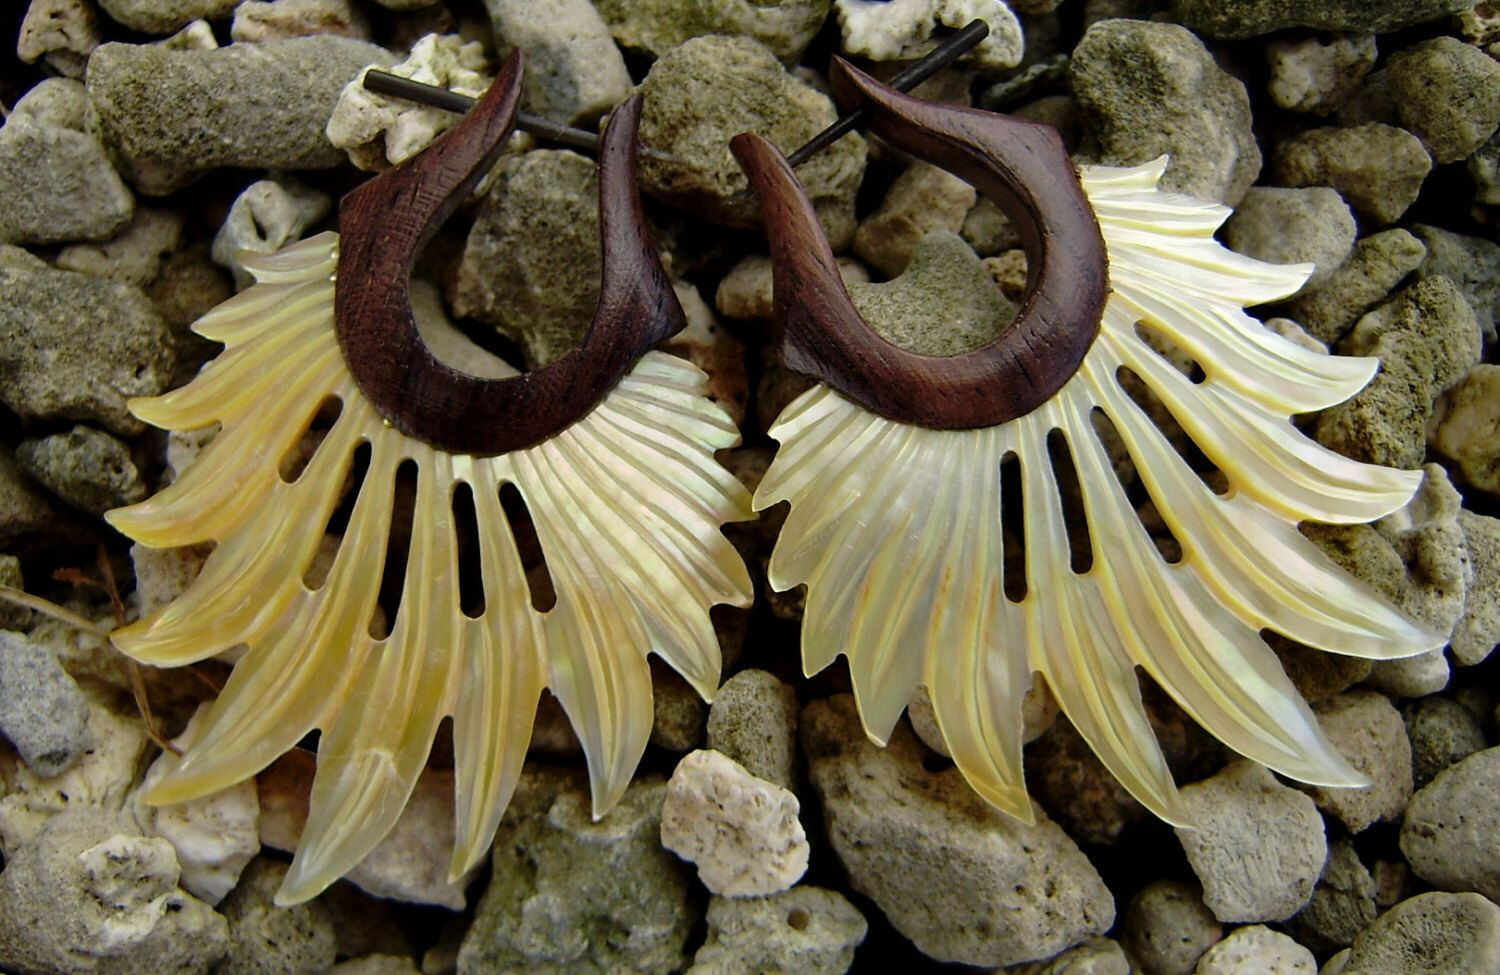 Fake Gauge Earrings ,Tribal Style, Mother of pearl, Shell, feather,Gold Shell,hand carved,organic.stick earrings by ANELAJADE on Etsy https://www.etsy.com/listing/157789621/fake-gauge-earrings-tribal-style-mother